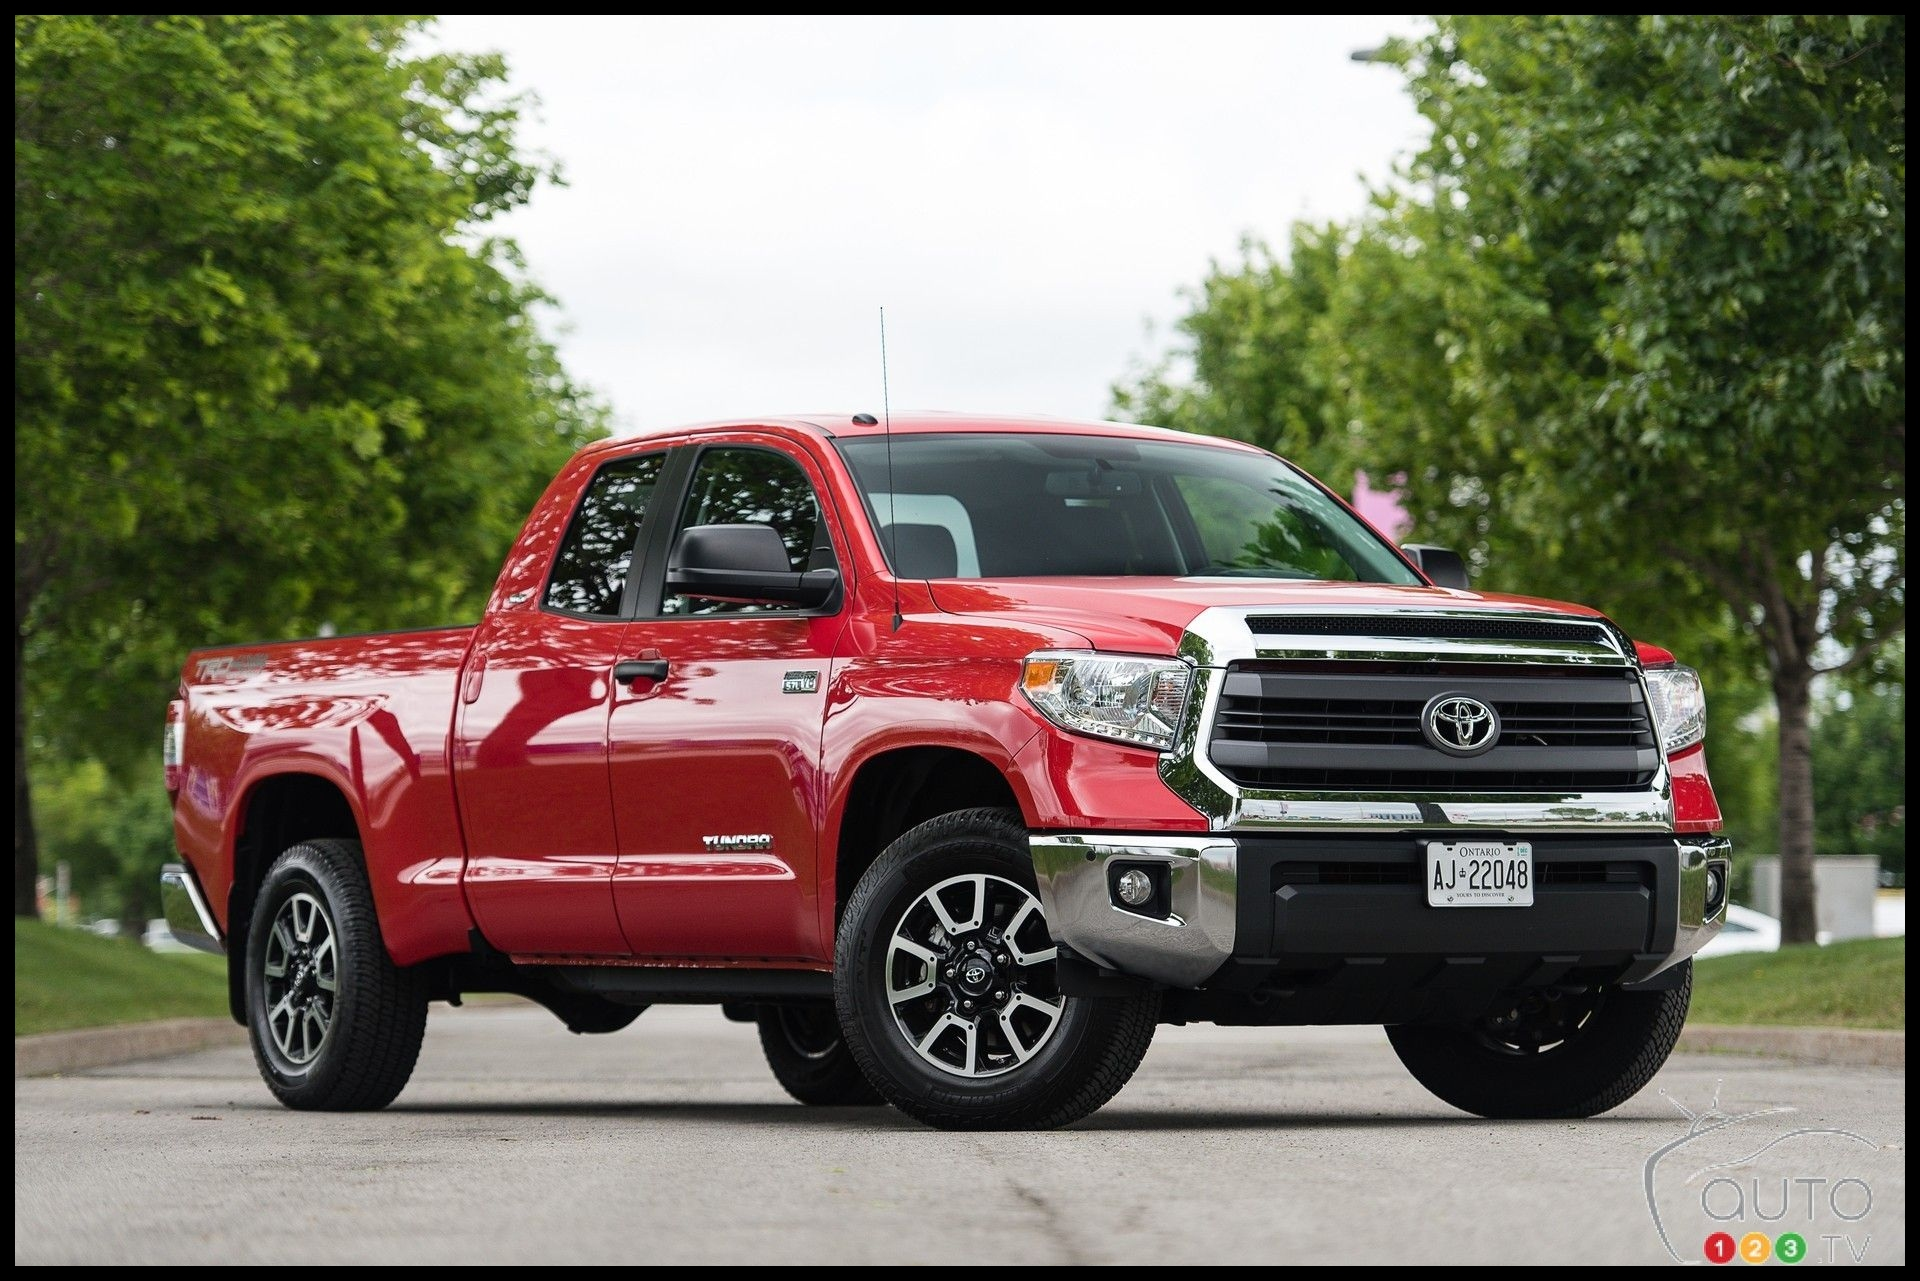 "New 2015 toyota Tundra Double Cab 4x4 Sr 5 7l Trd Review ¢""' Let"